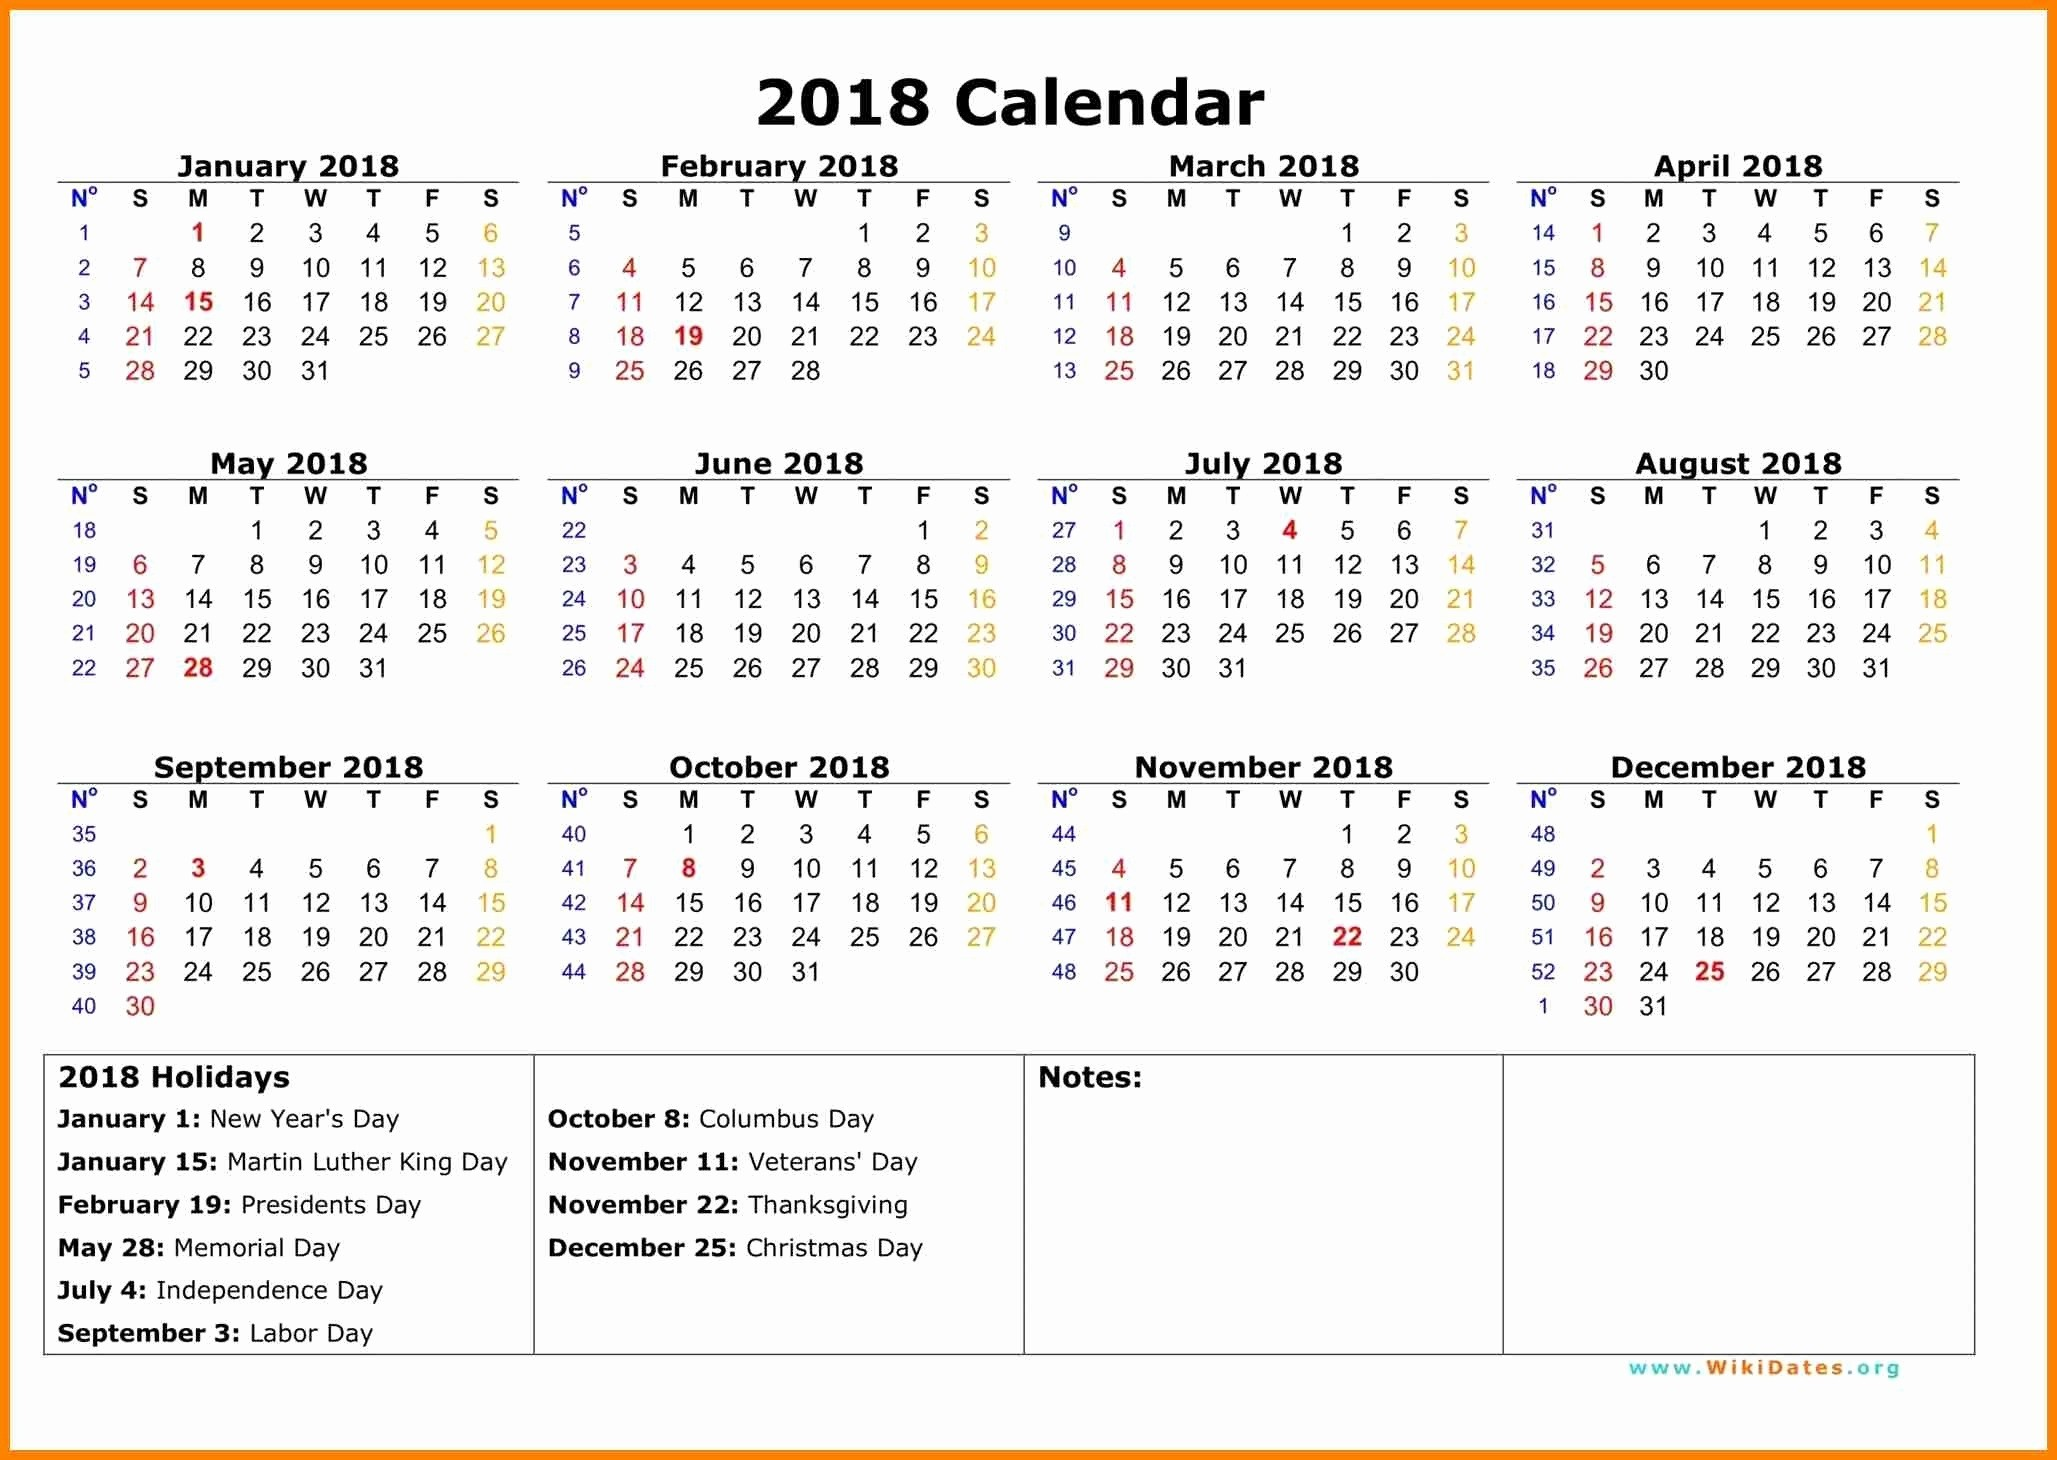 April tithi software help festivel tithi calendar picturesque 2057x1460 2019 festivel tithi hindu year picturesque